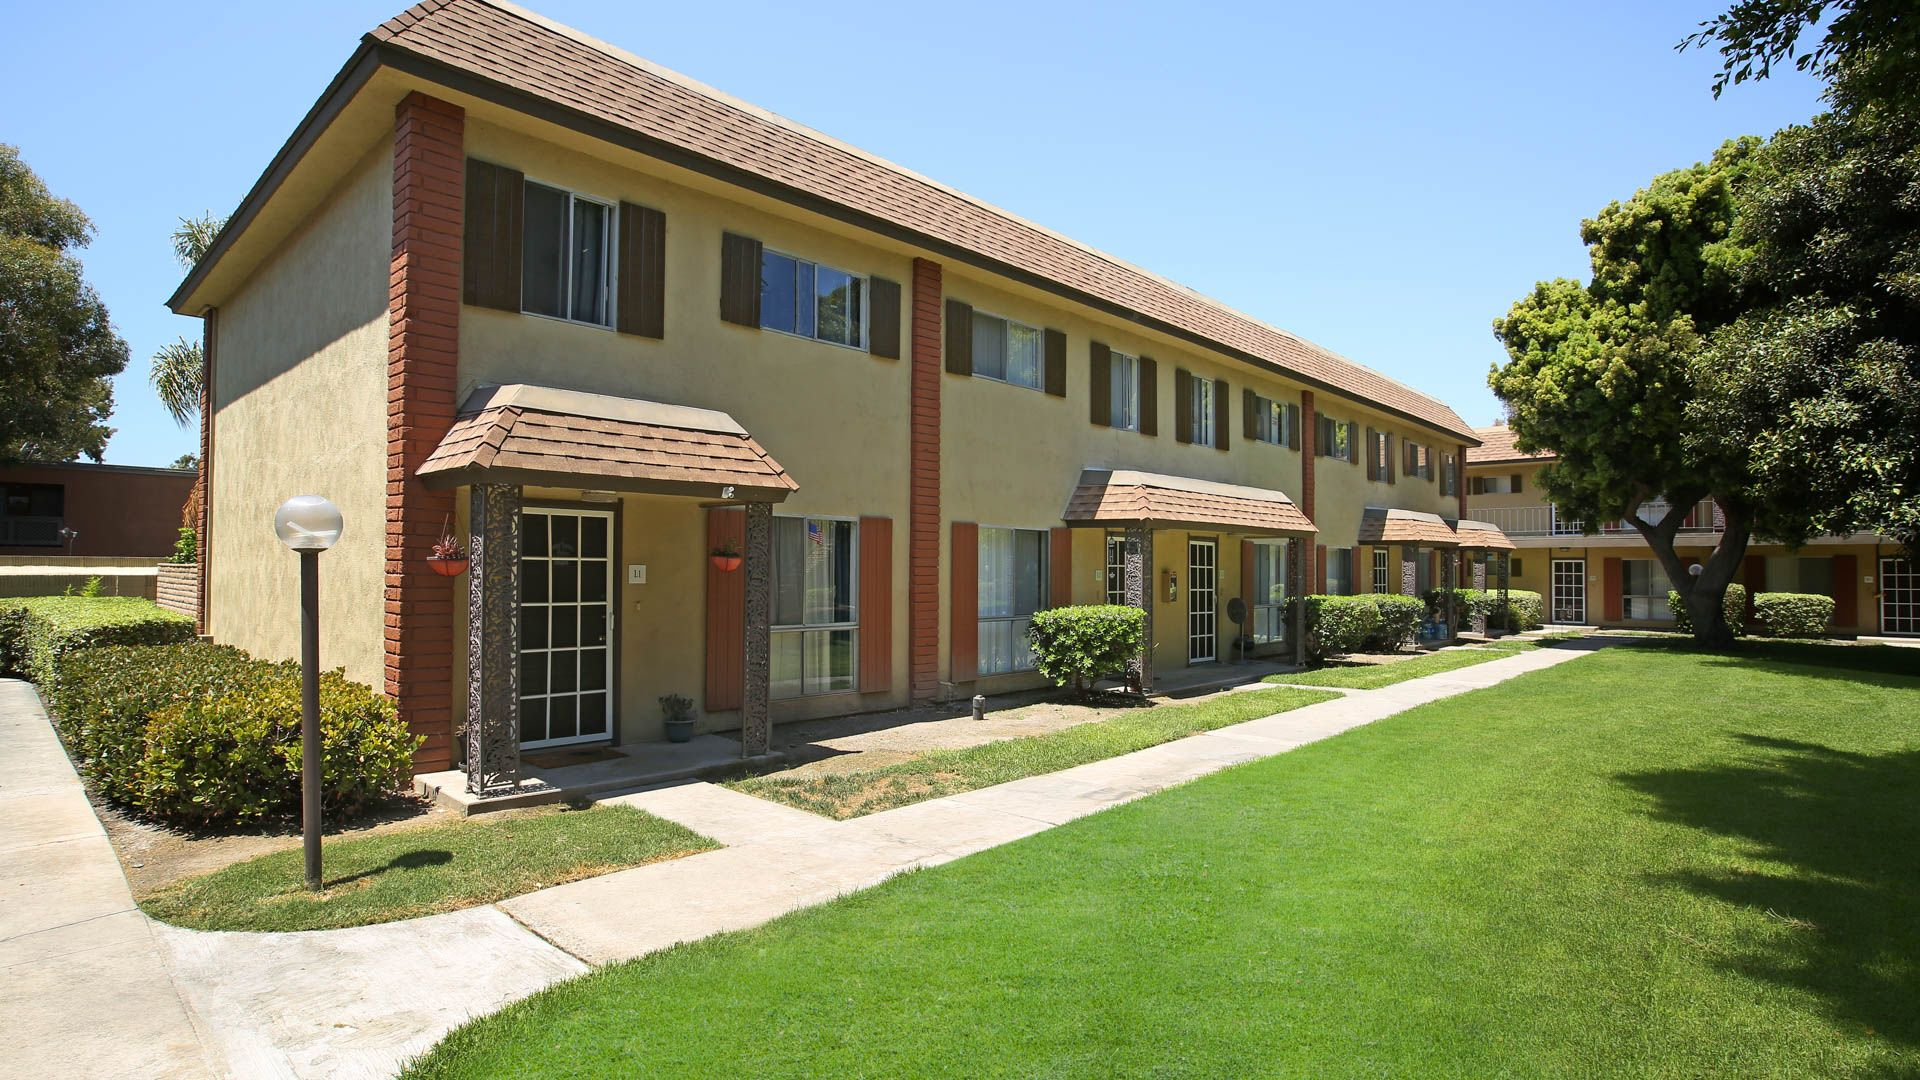 3 Bedroom Apartments In Orange County